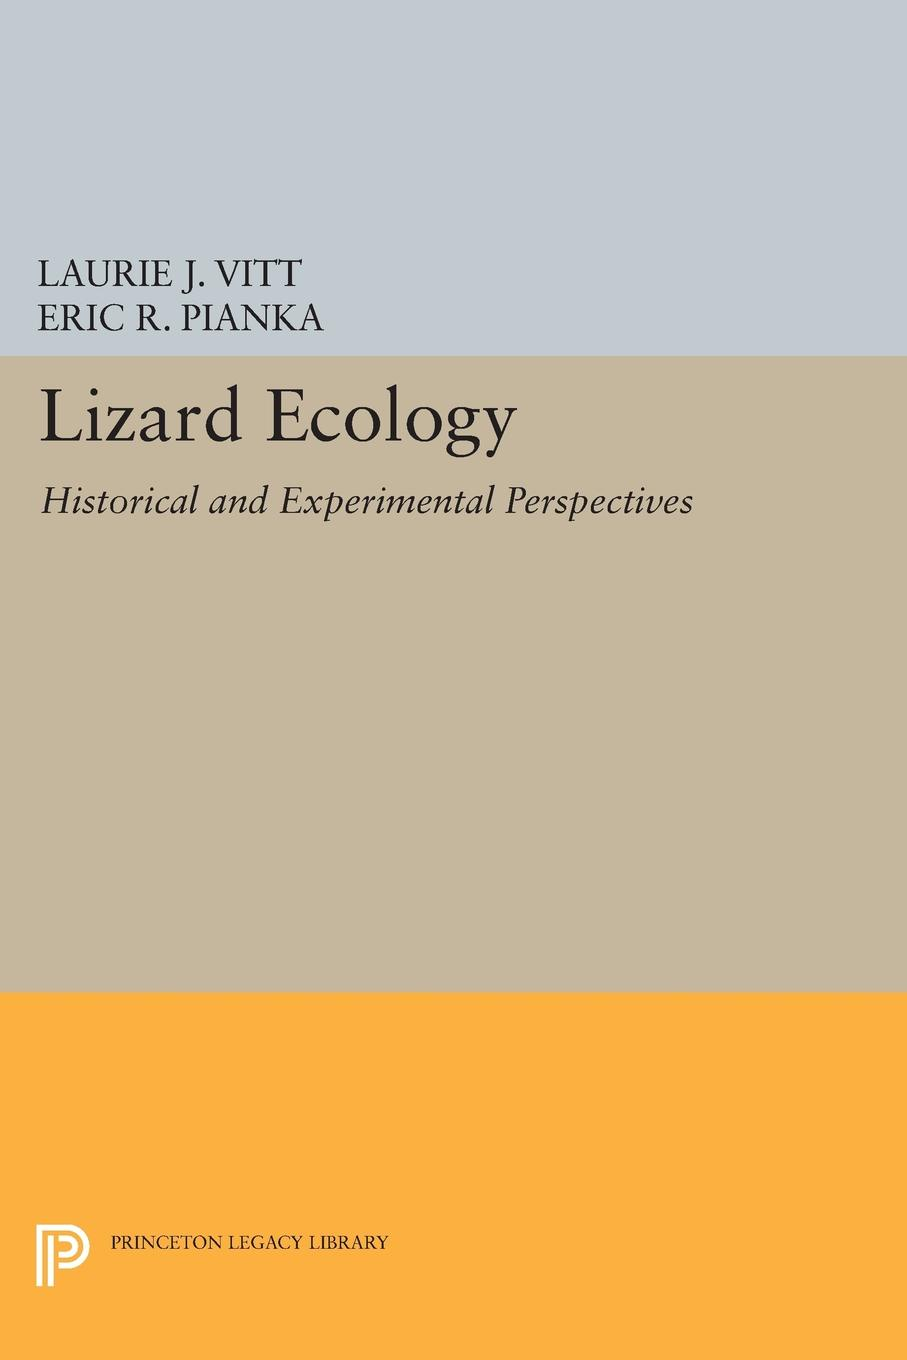 лучшая цена Lizard Ecology. Historical and Experimental Perspectives